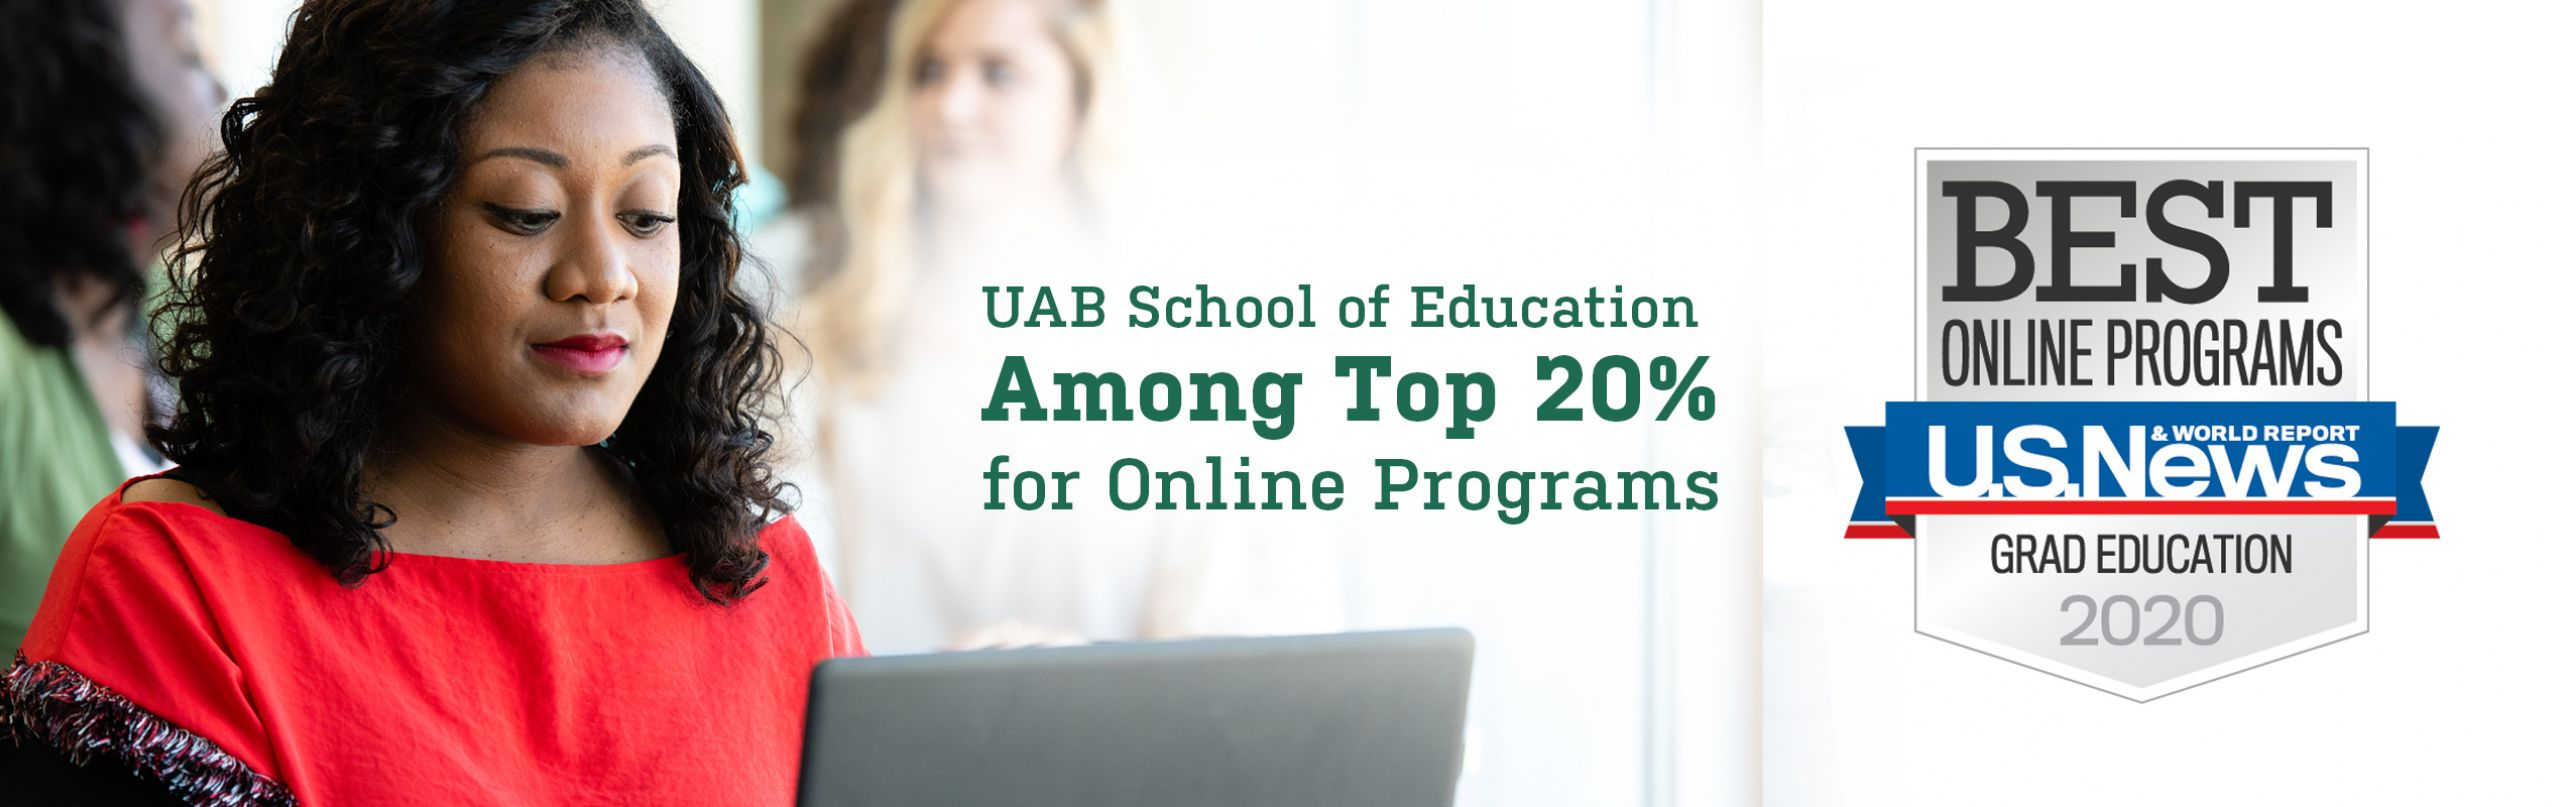 UAB School of Education Among Top 20% for Online Programs